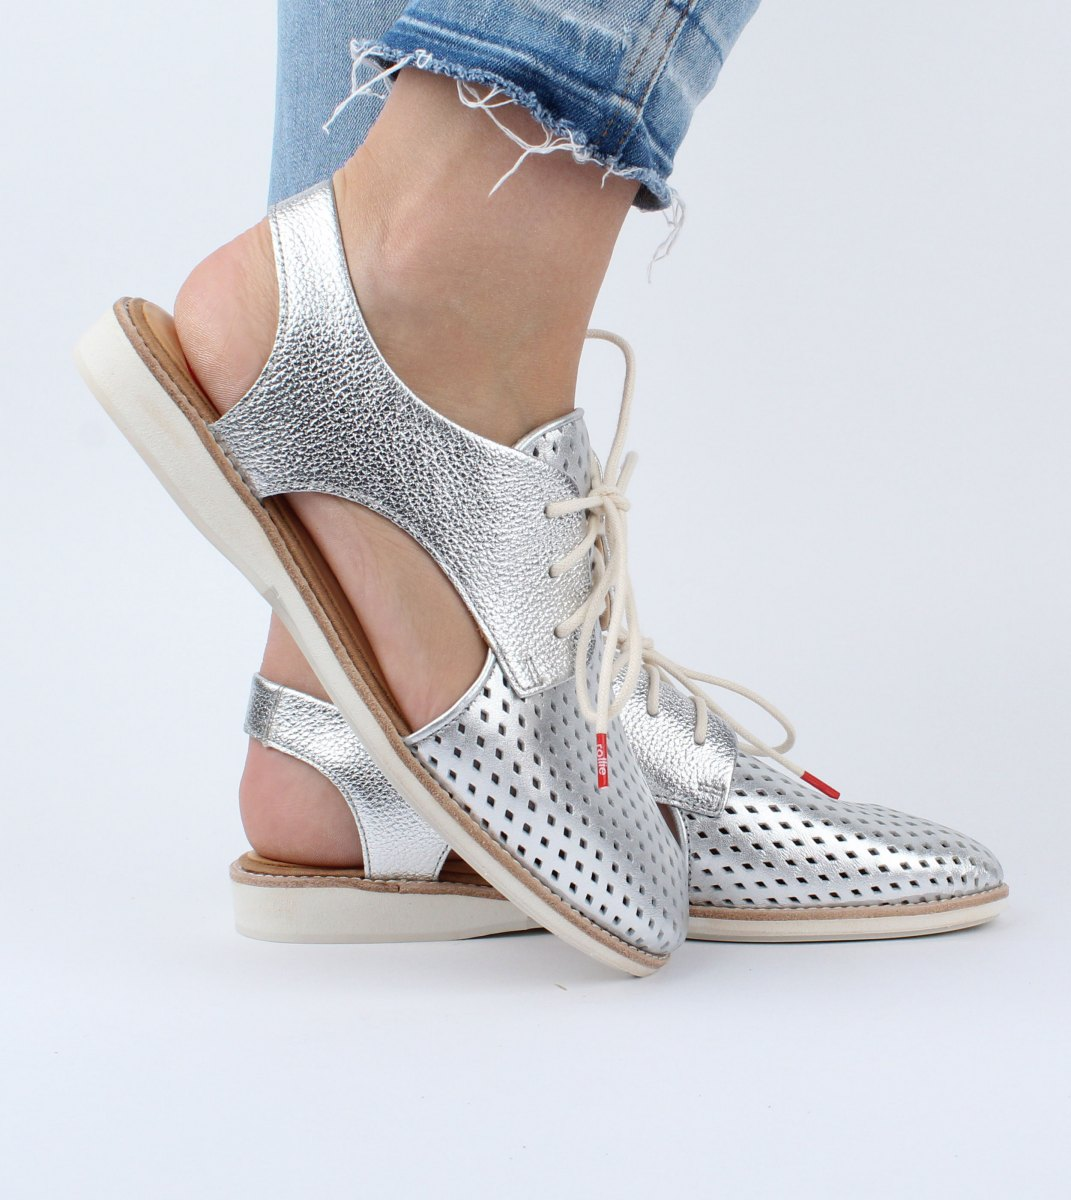 Rollie-Derby_Slingback_Punch-Silver-M1